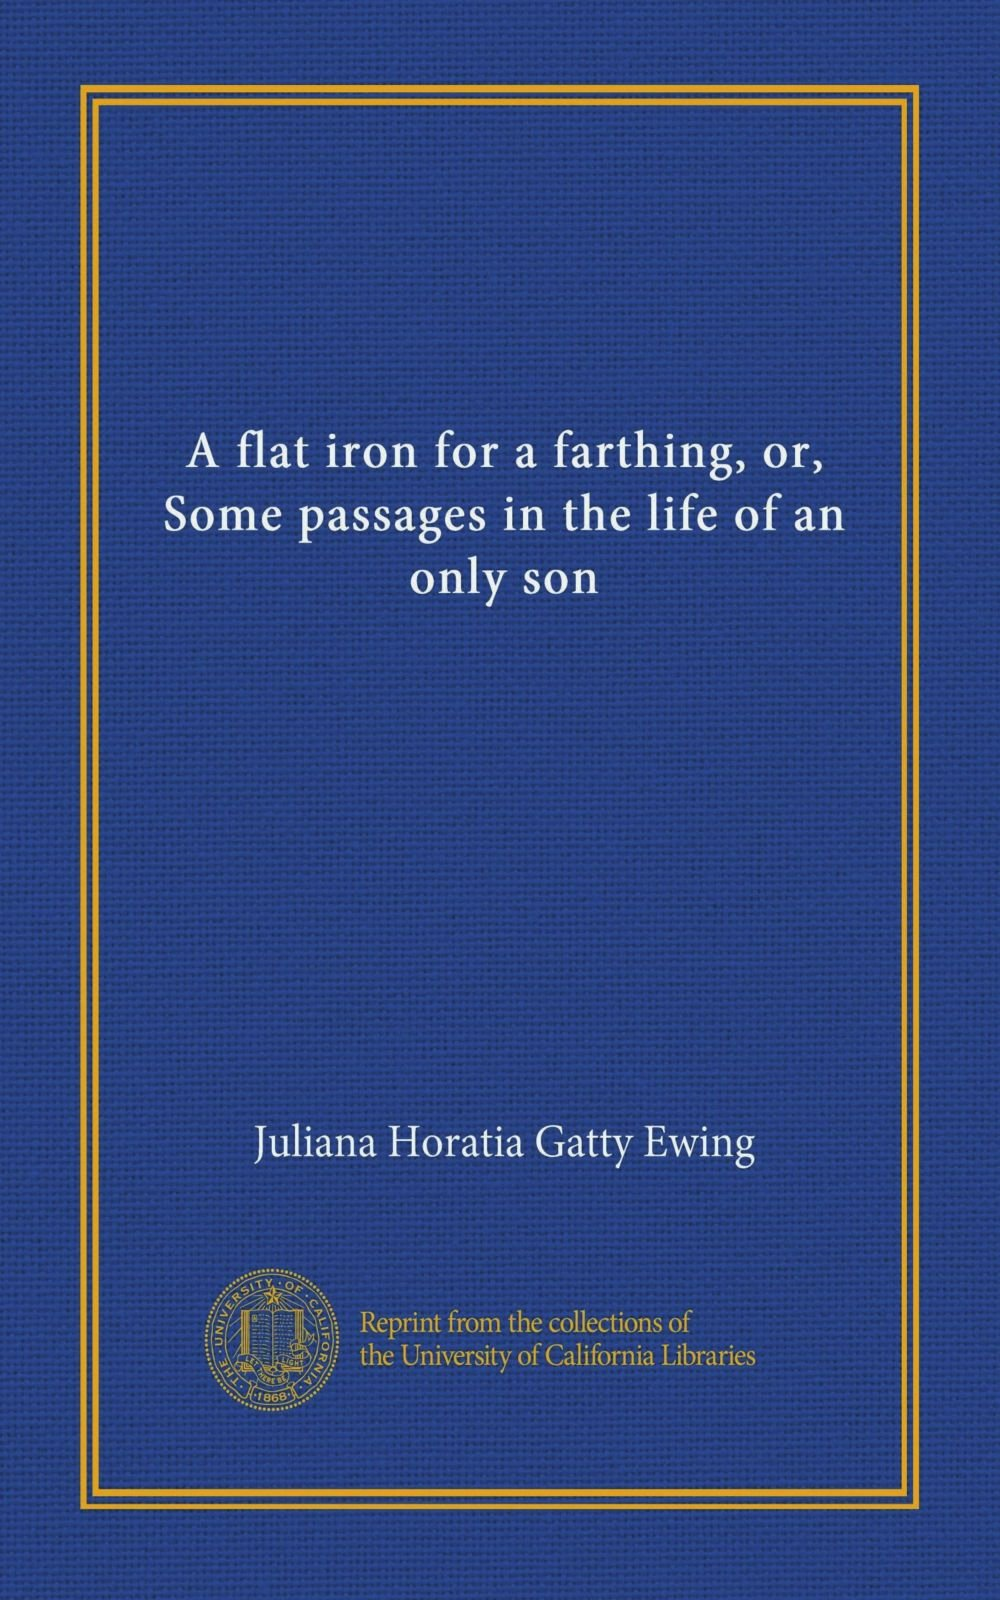 Download A flat iron for a farthing, or, Some passages in the life of an only son ebook